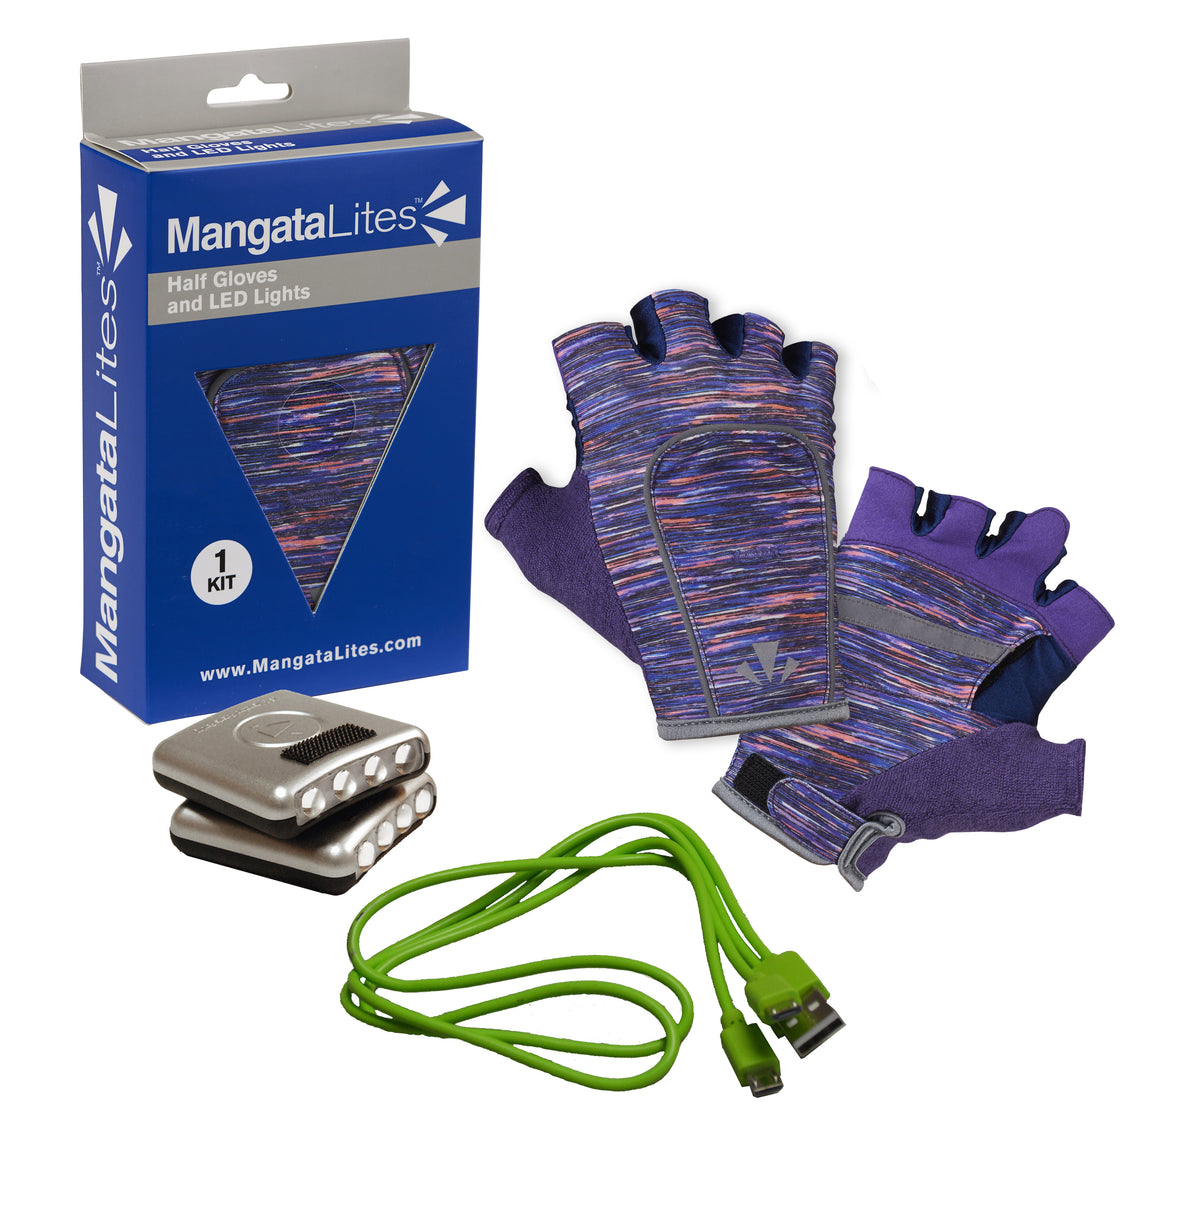 MangataLites Purple Flecks Half Gloves Kit (Lights included) - Mangata